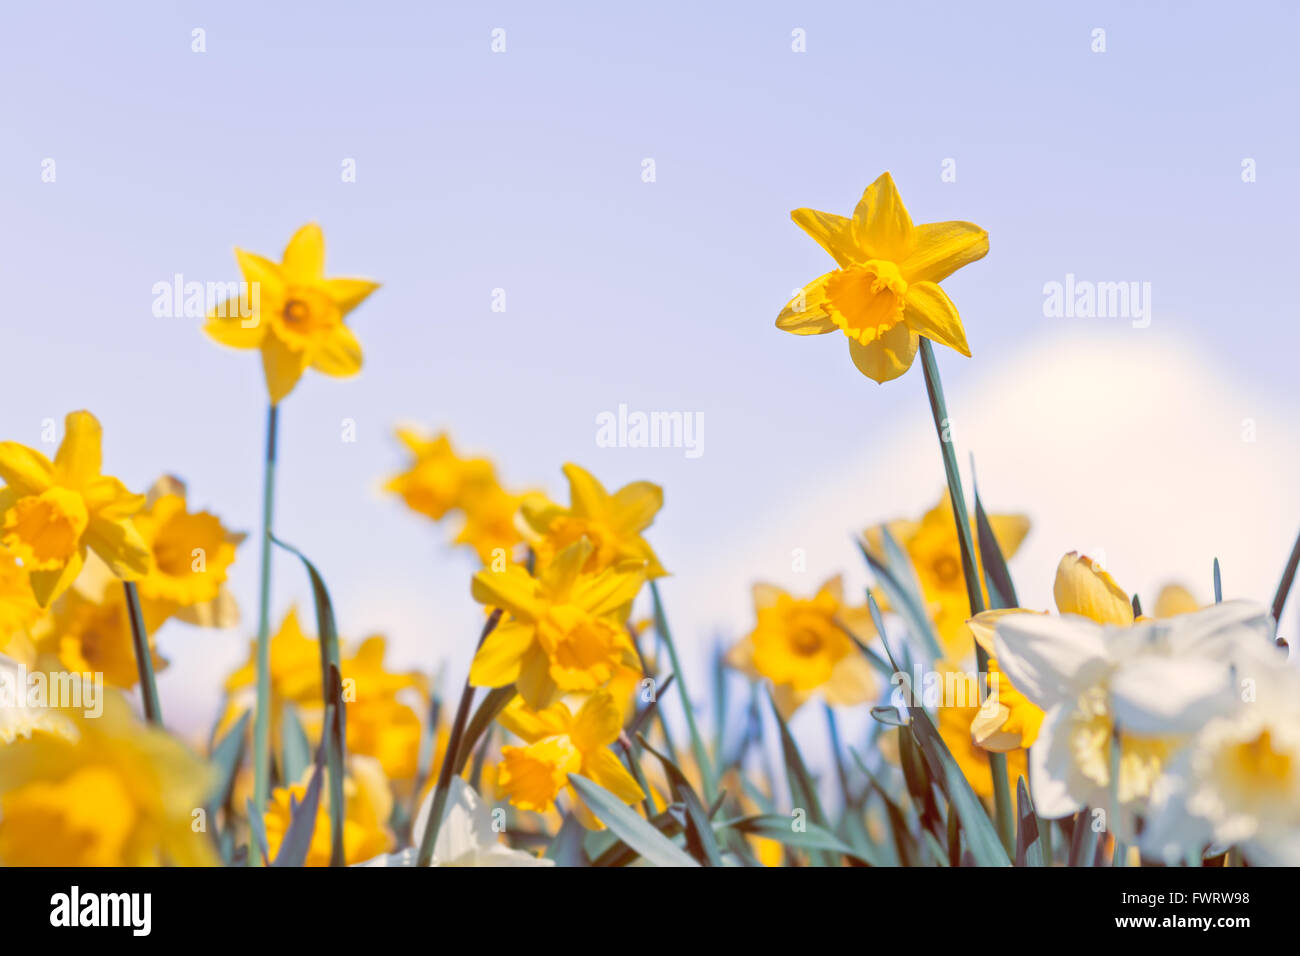 Wild Yellow And White Daffodil Flowers On Bright Cloudy Sky Stock